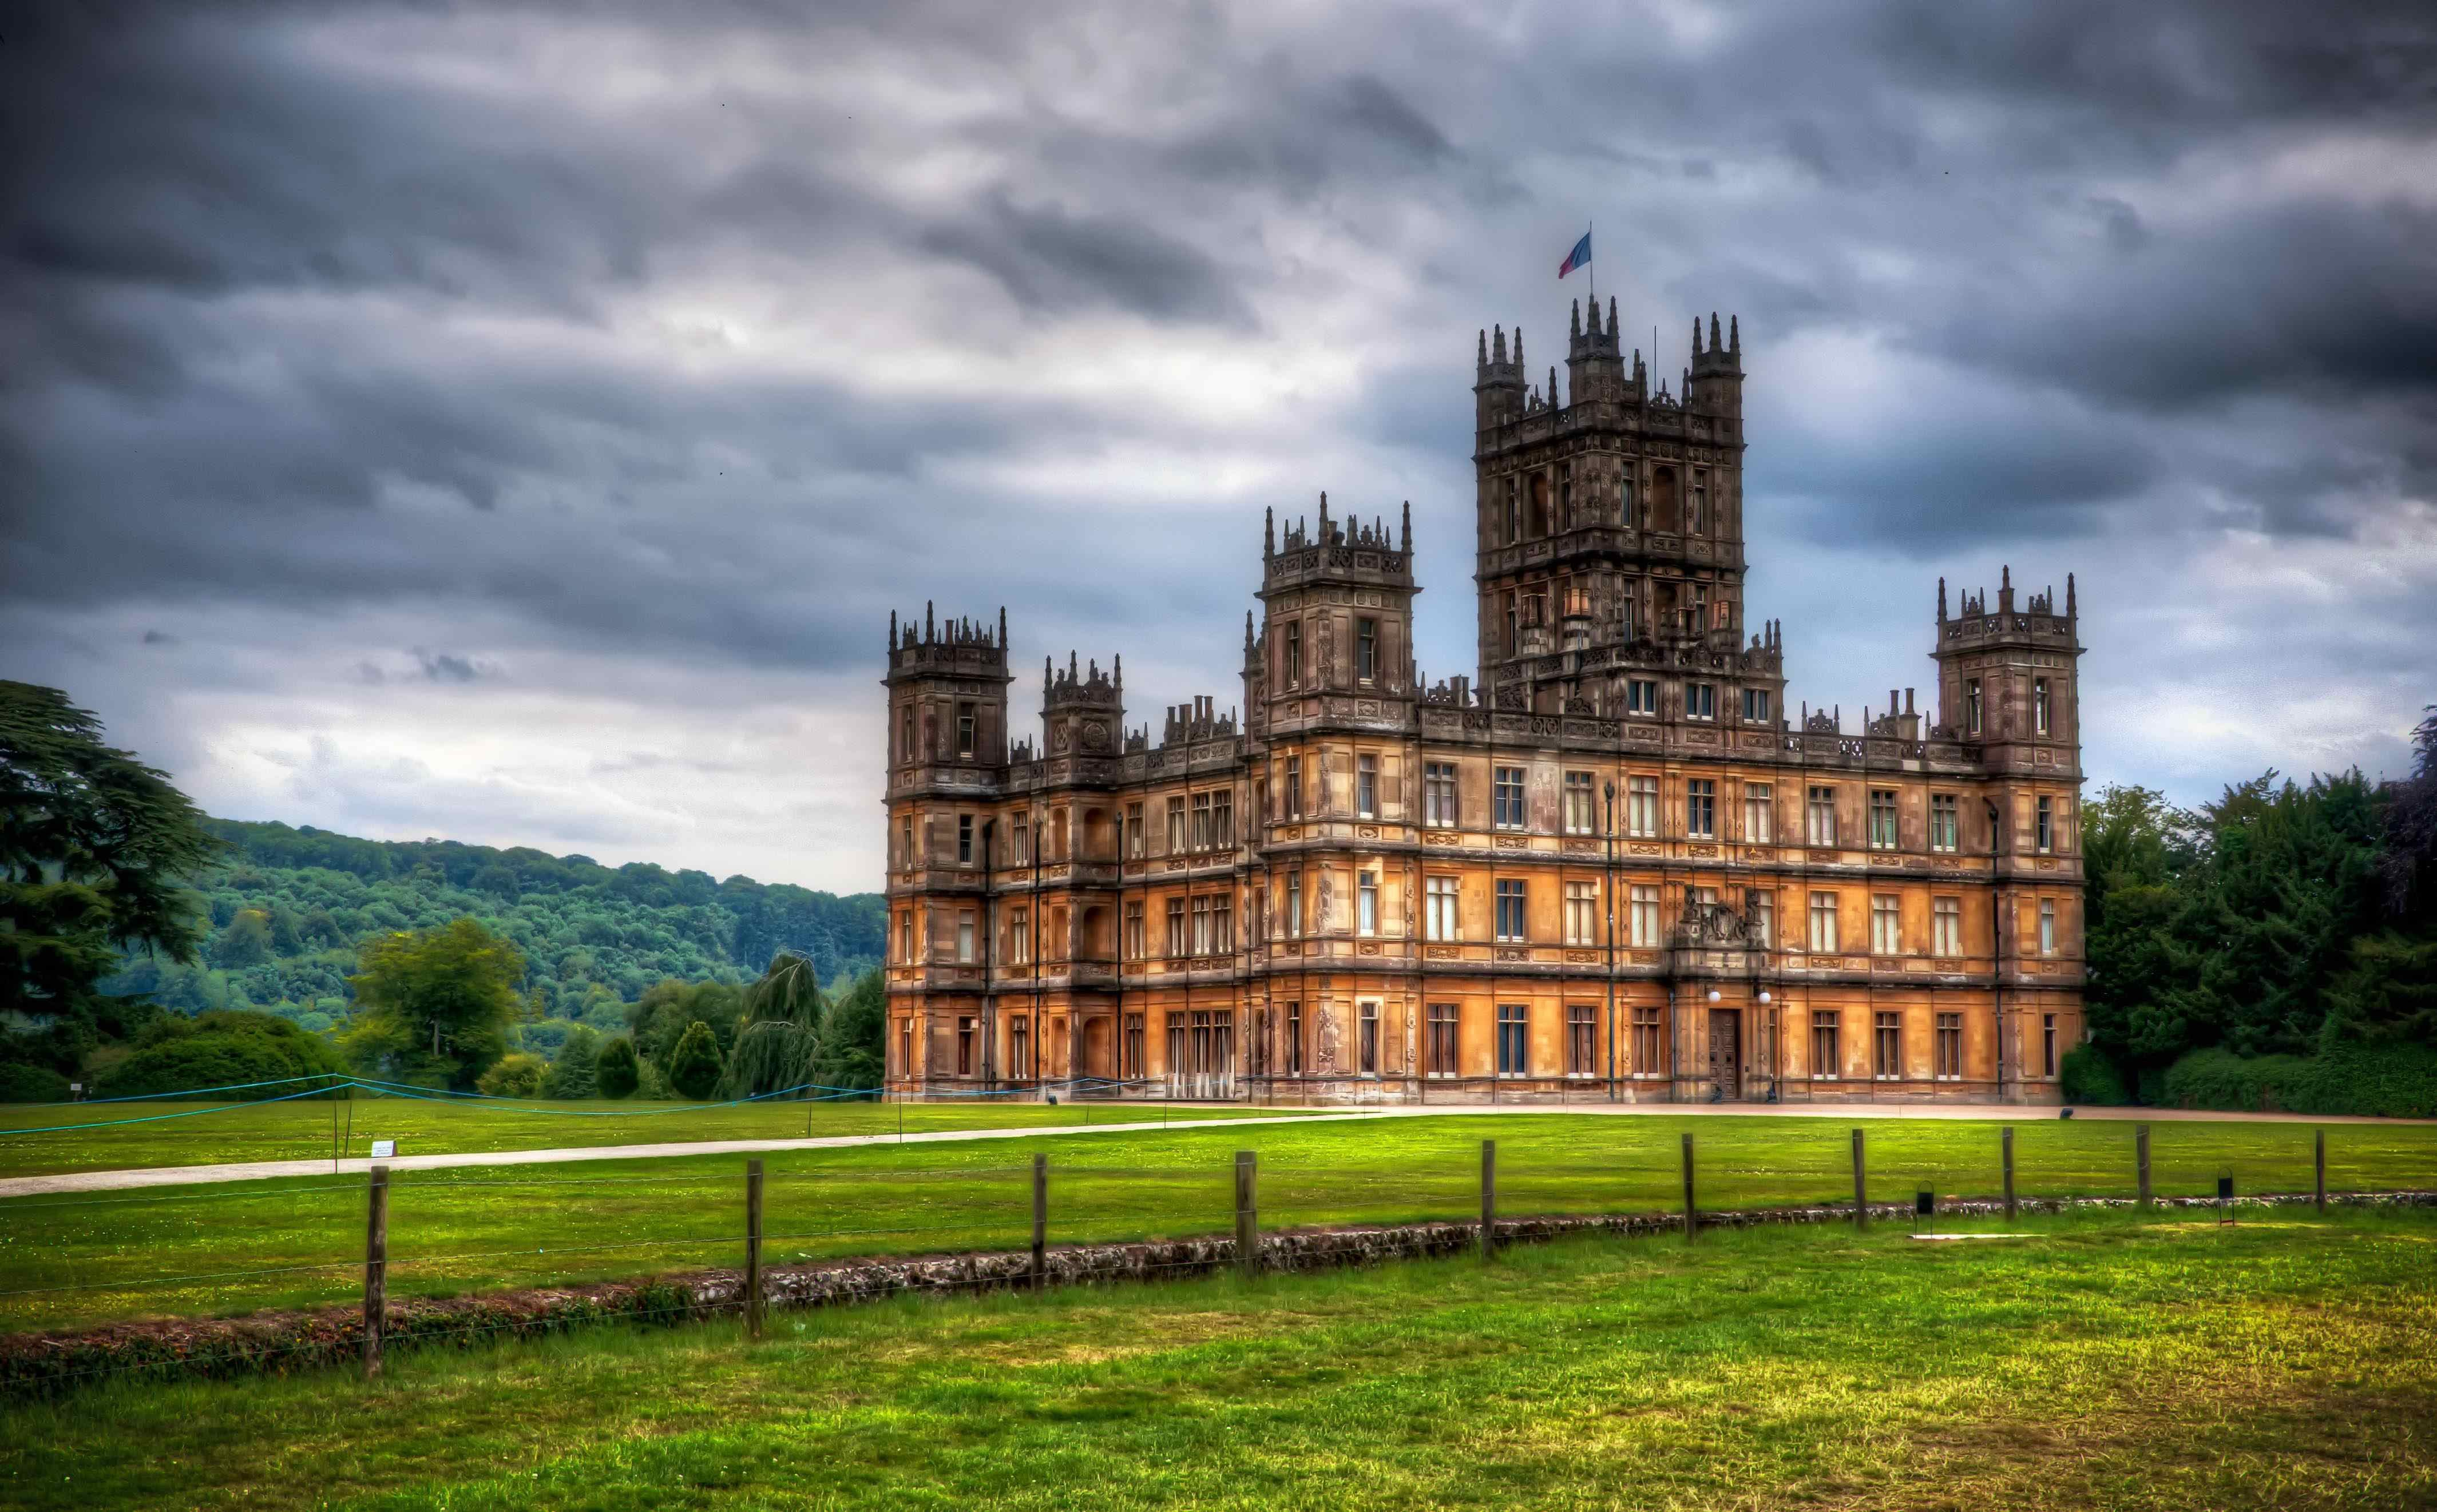 Rainy Season Wallpapers With Quotes Hd Downton Abbey Backgrounds Download Pixelstalk Net